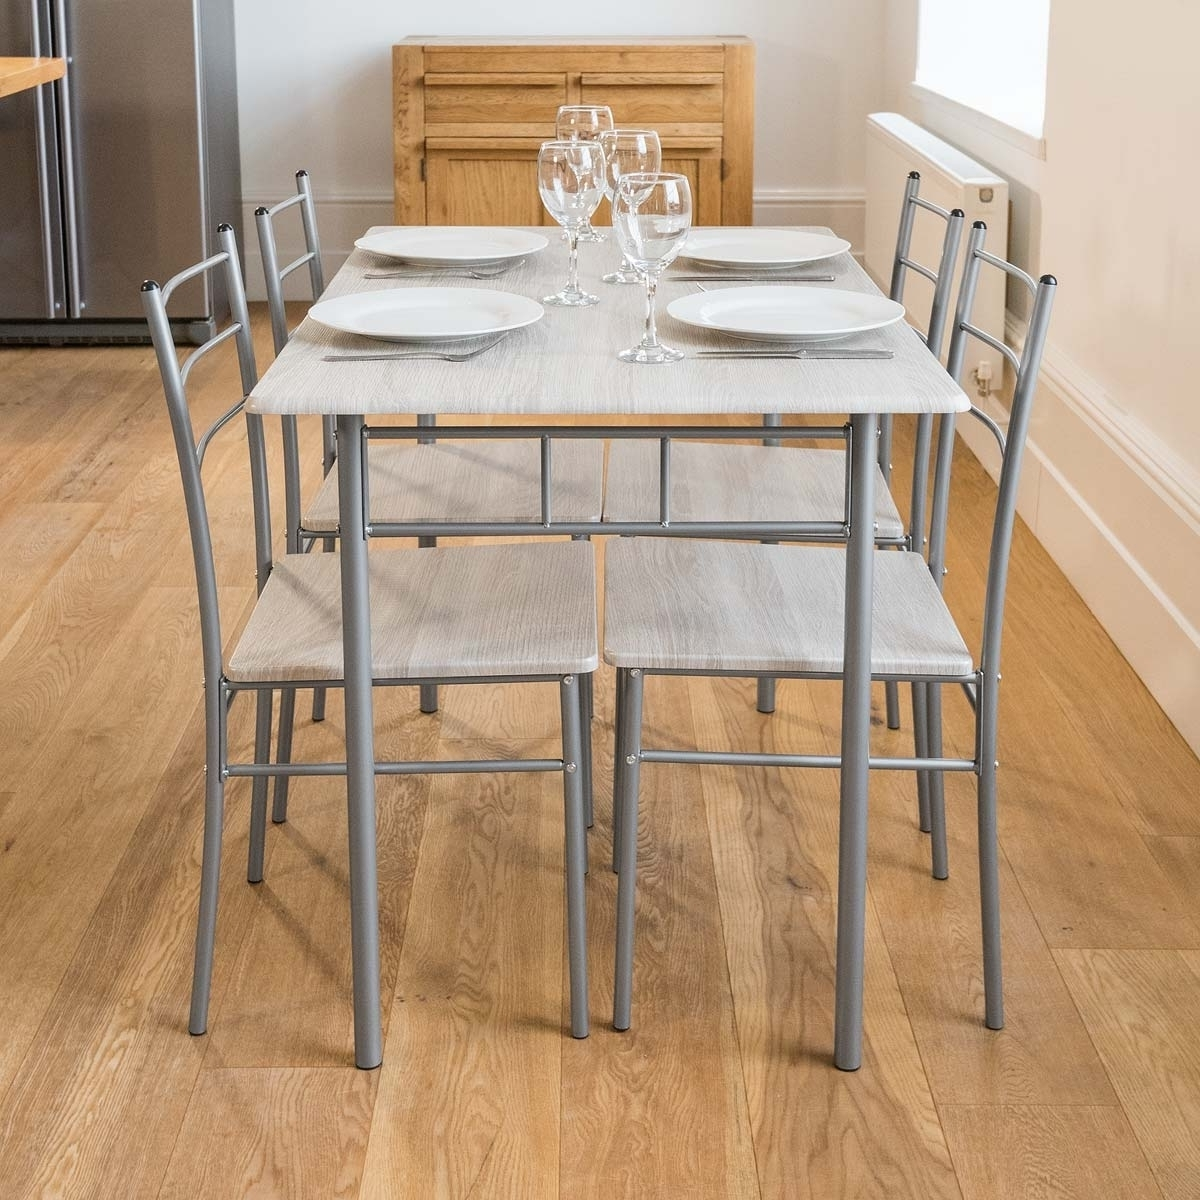 5 Piece Modern Dining Table And 4 Chairs Set Textured Wood Effect pertaining to 2017 Modern Dining Table And Chairs